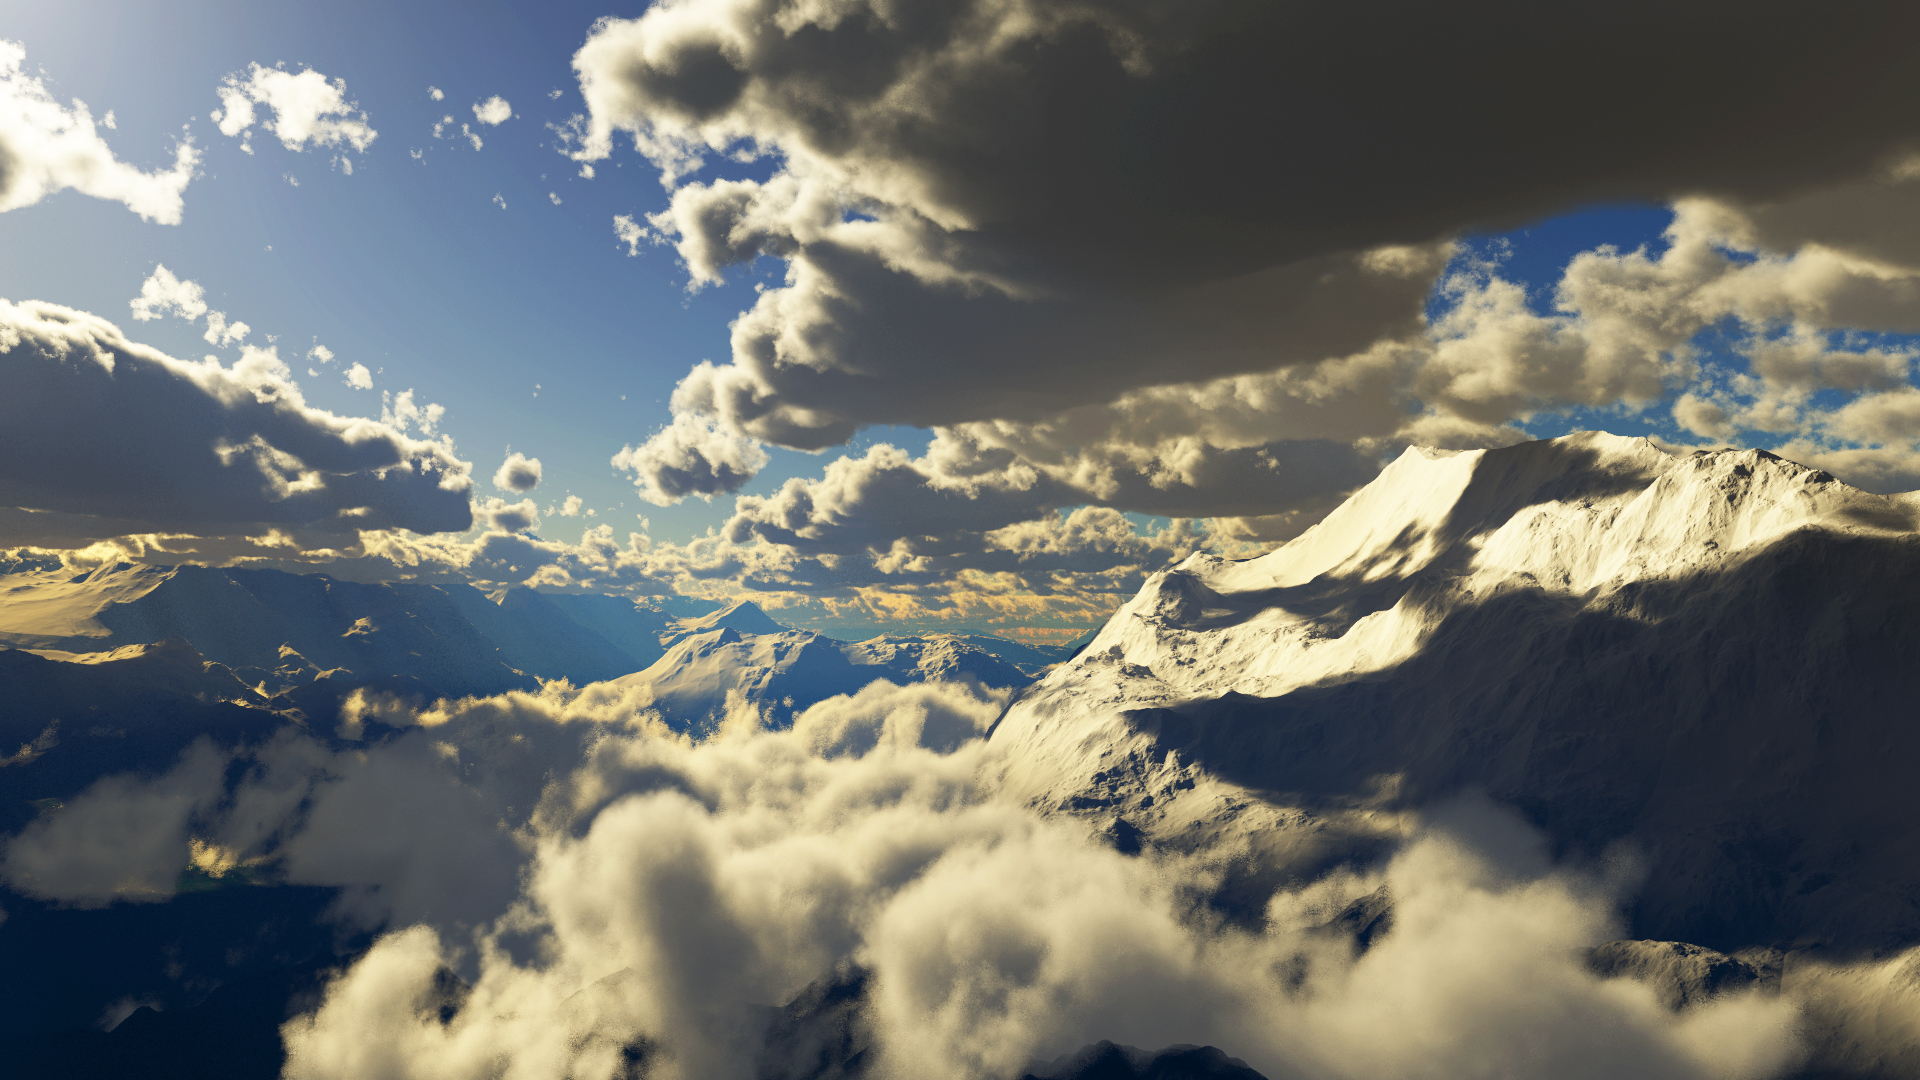 Mountains Clouds Wallpaper LOLd Wallpaper   Funny Pictures   Funny 1920x1080